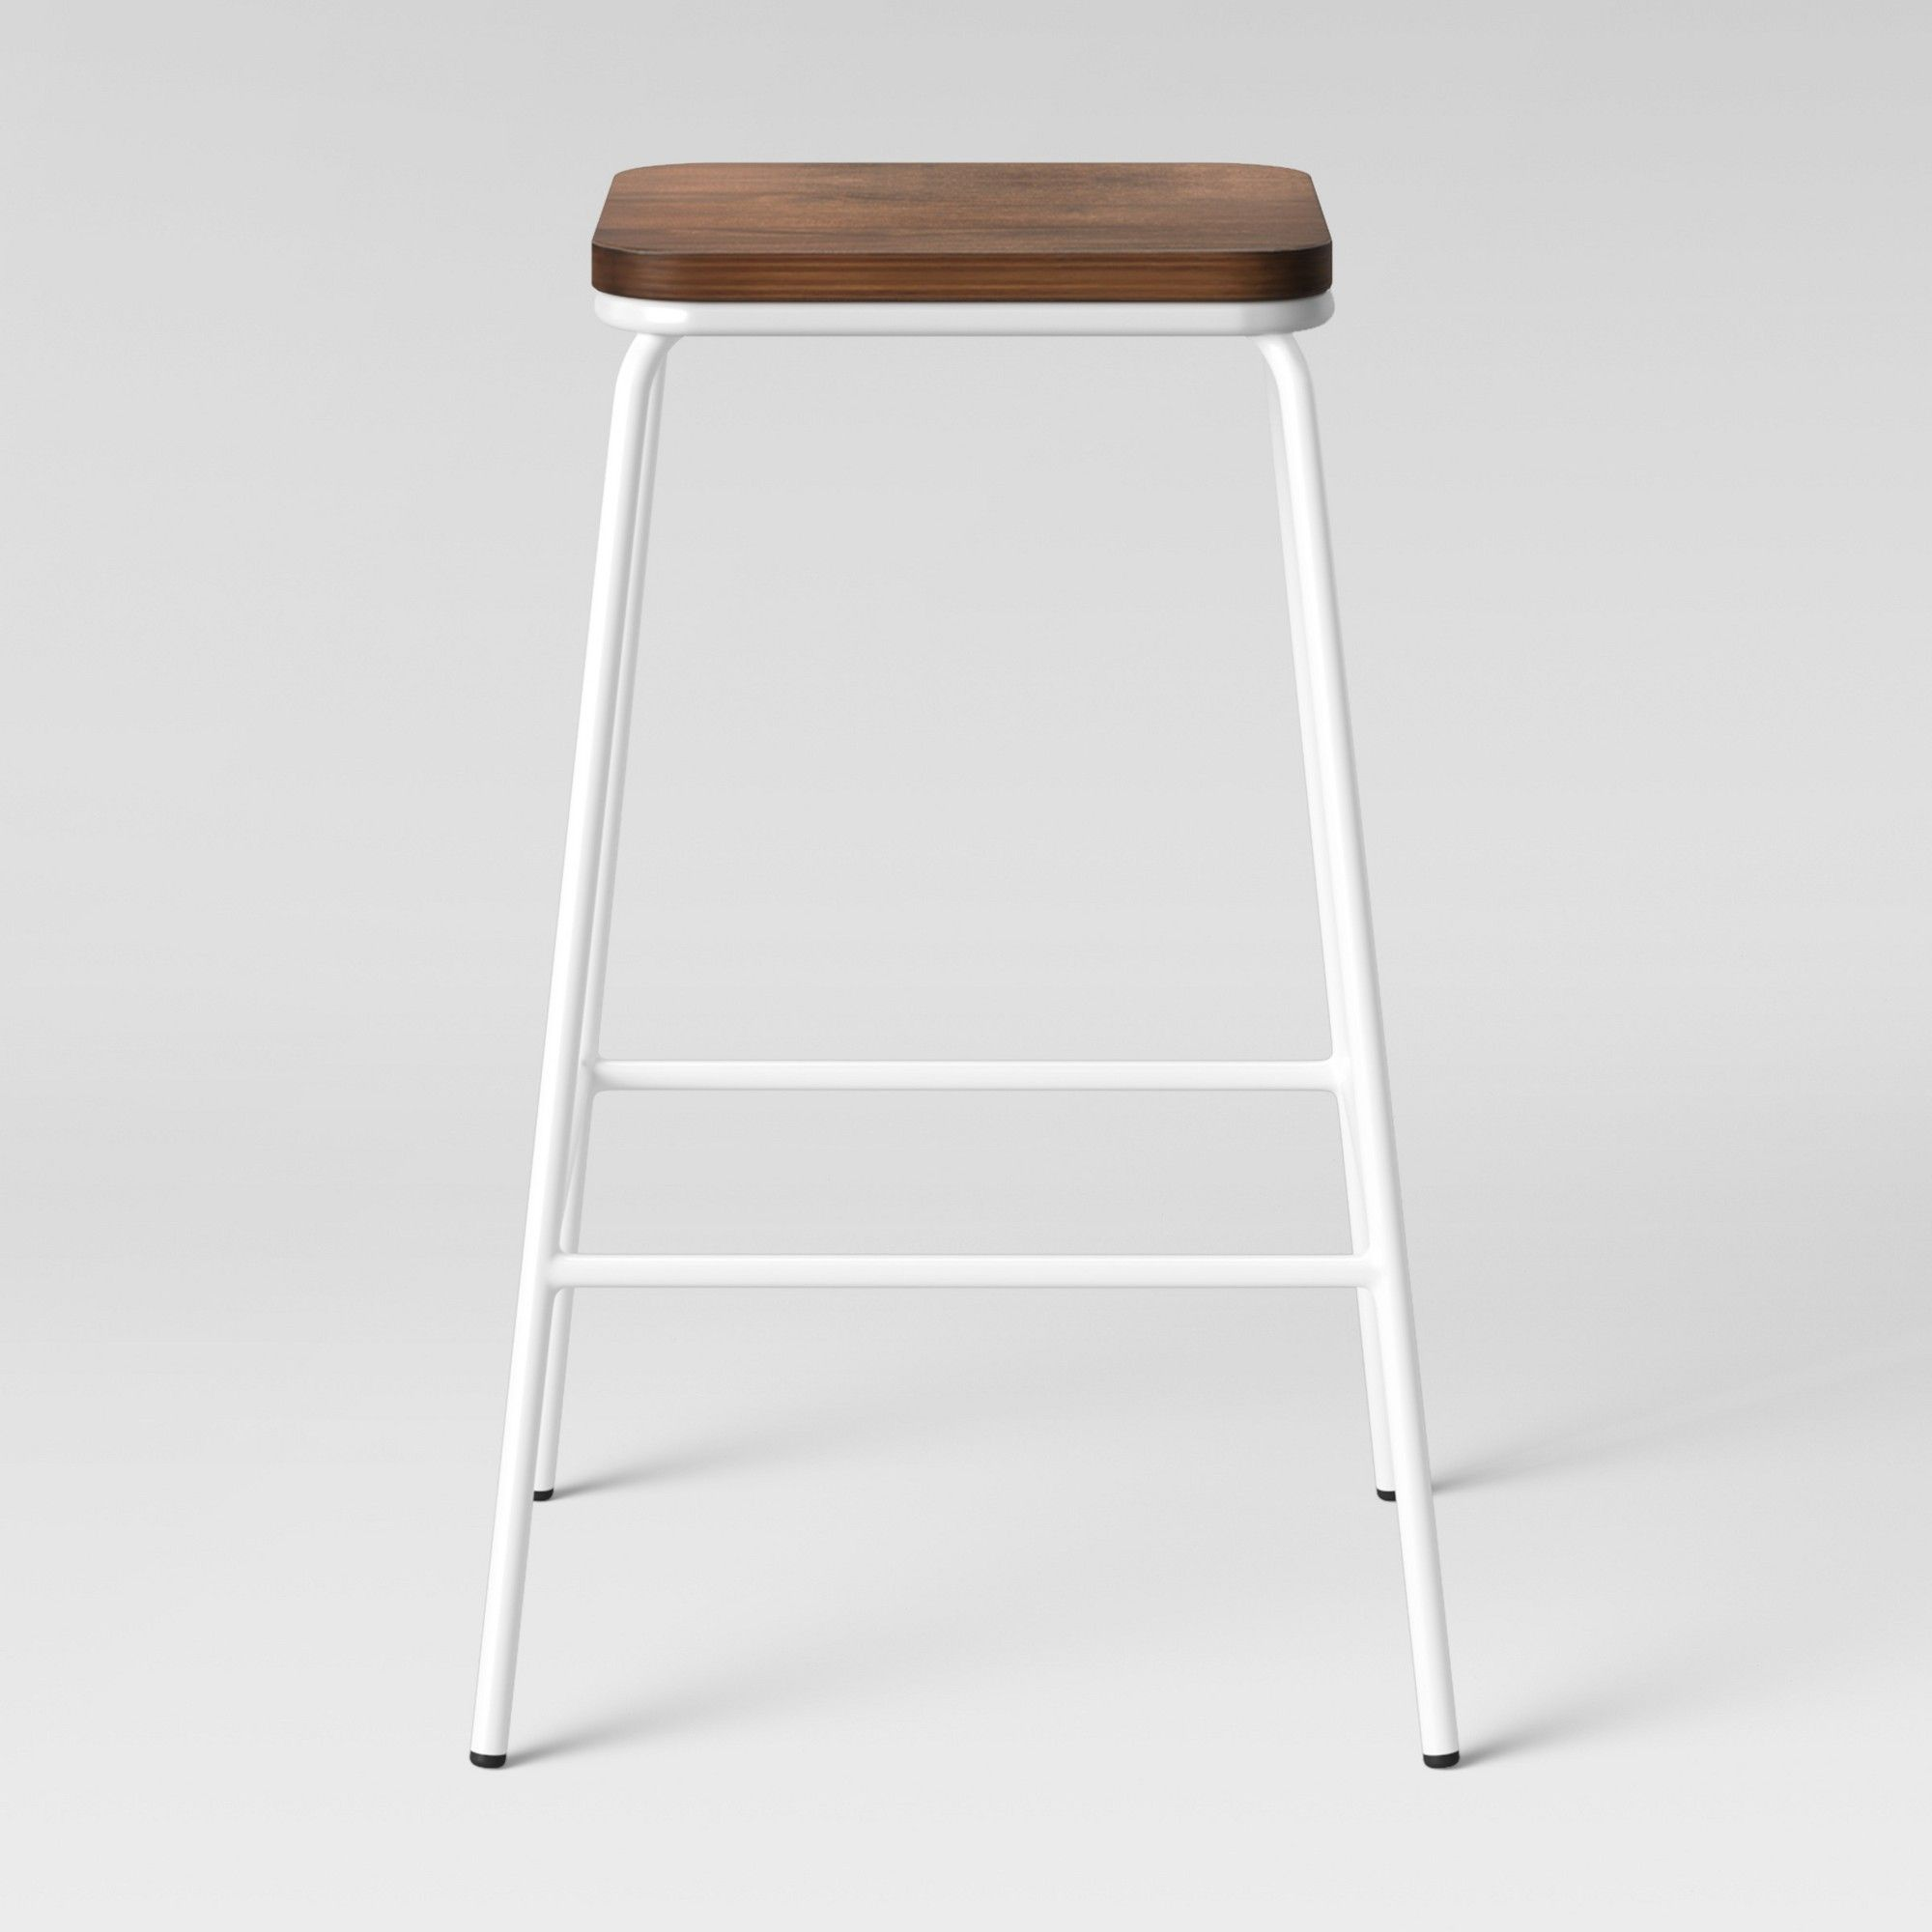 Amazing Rhodes Metal Wood Counter Stool White Project 62 In 2019 Beatyapartments Chair Design Images Beatyapartmentscom